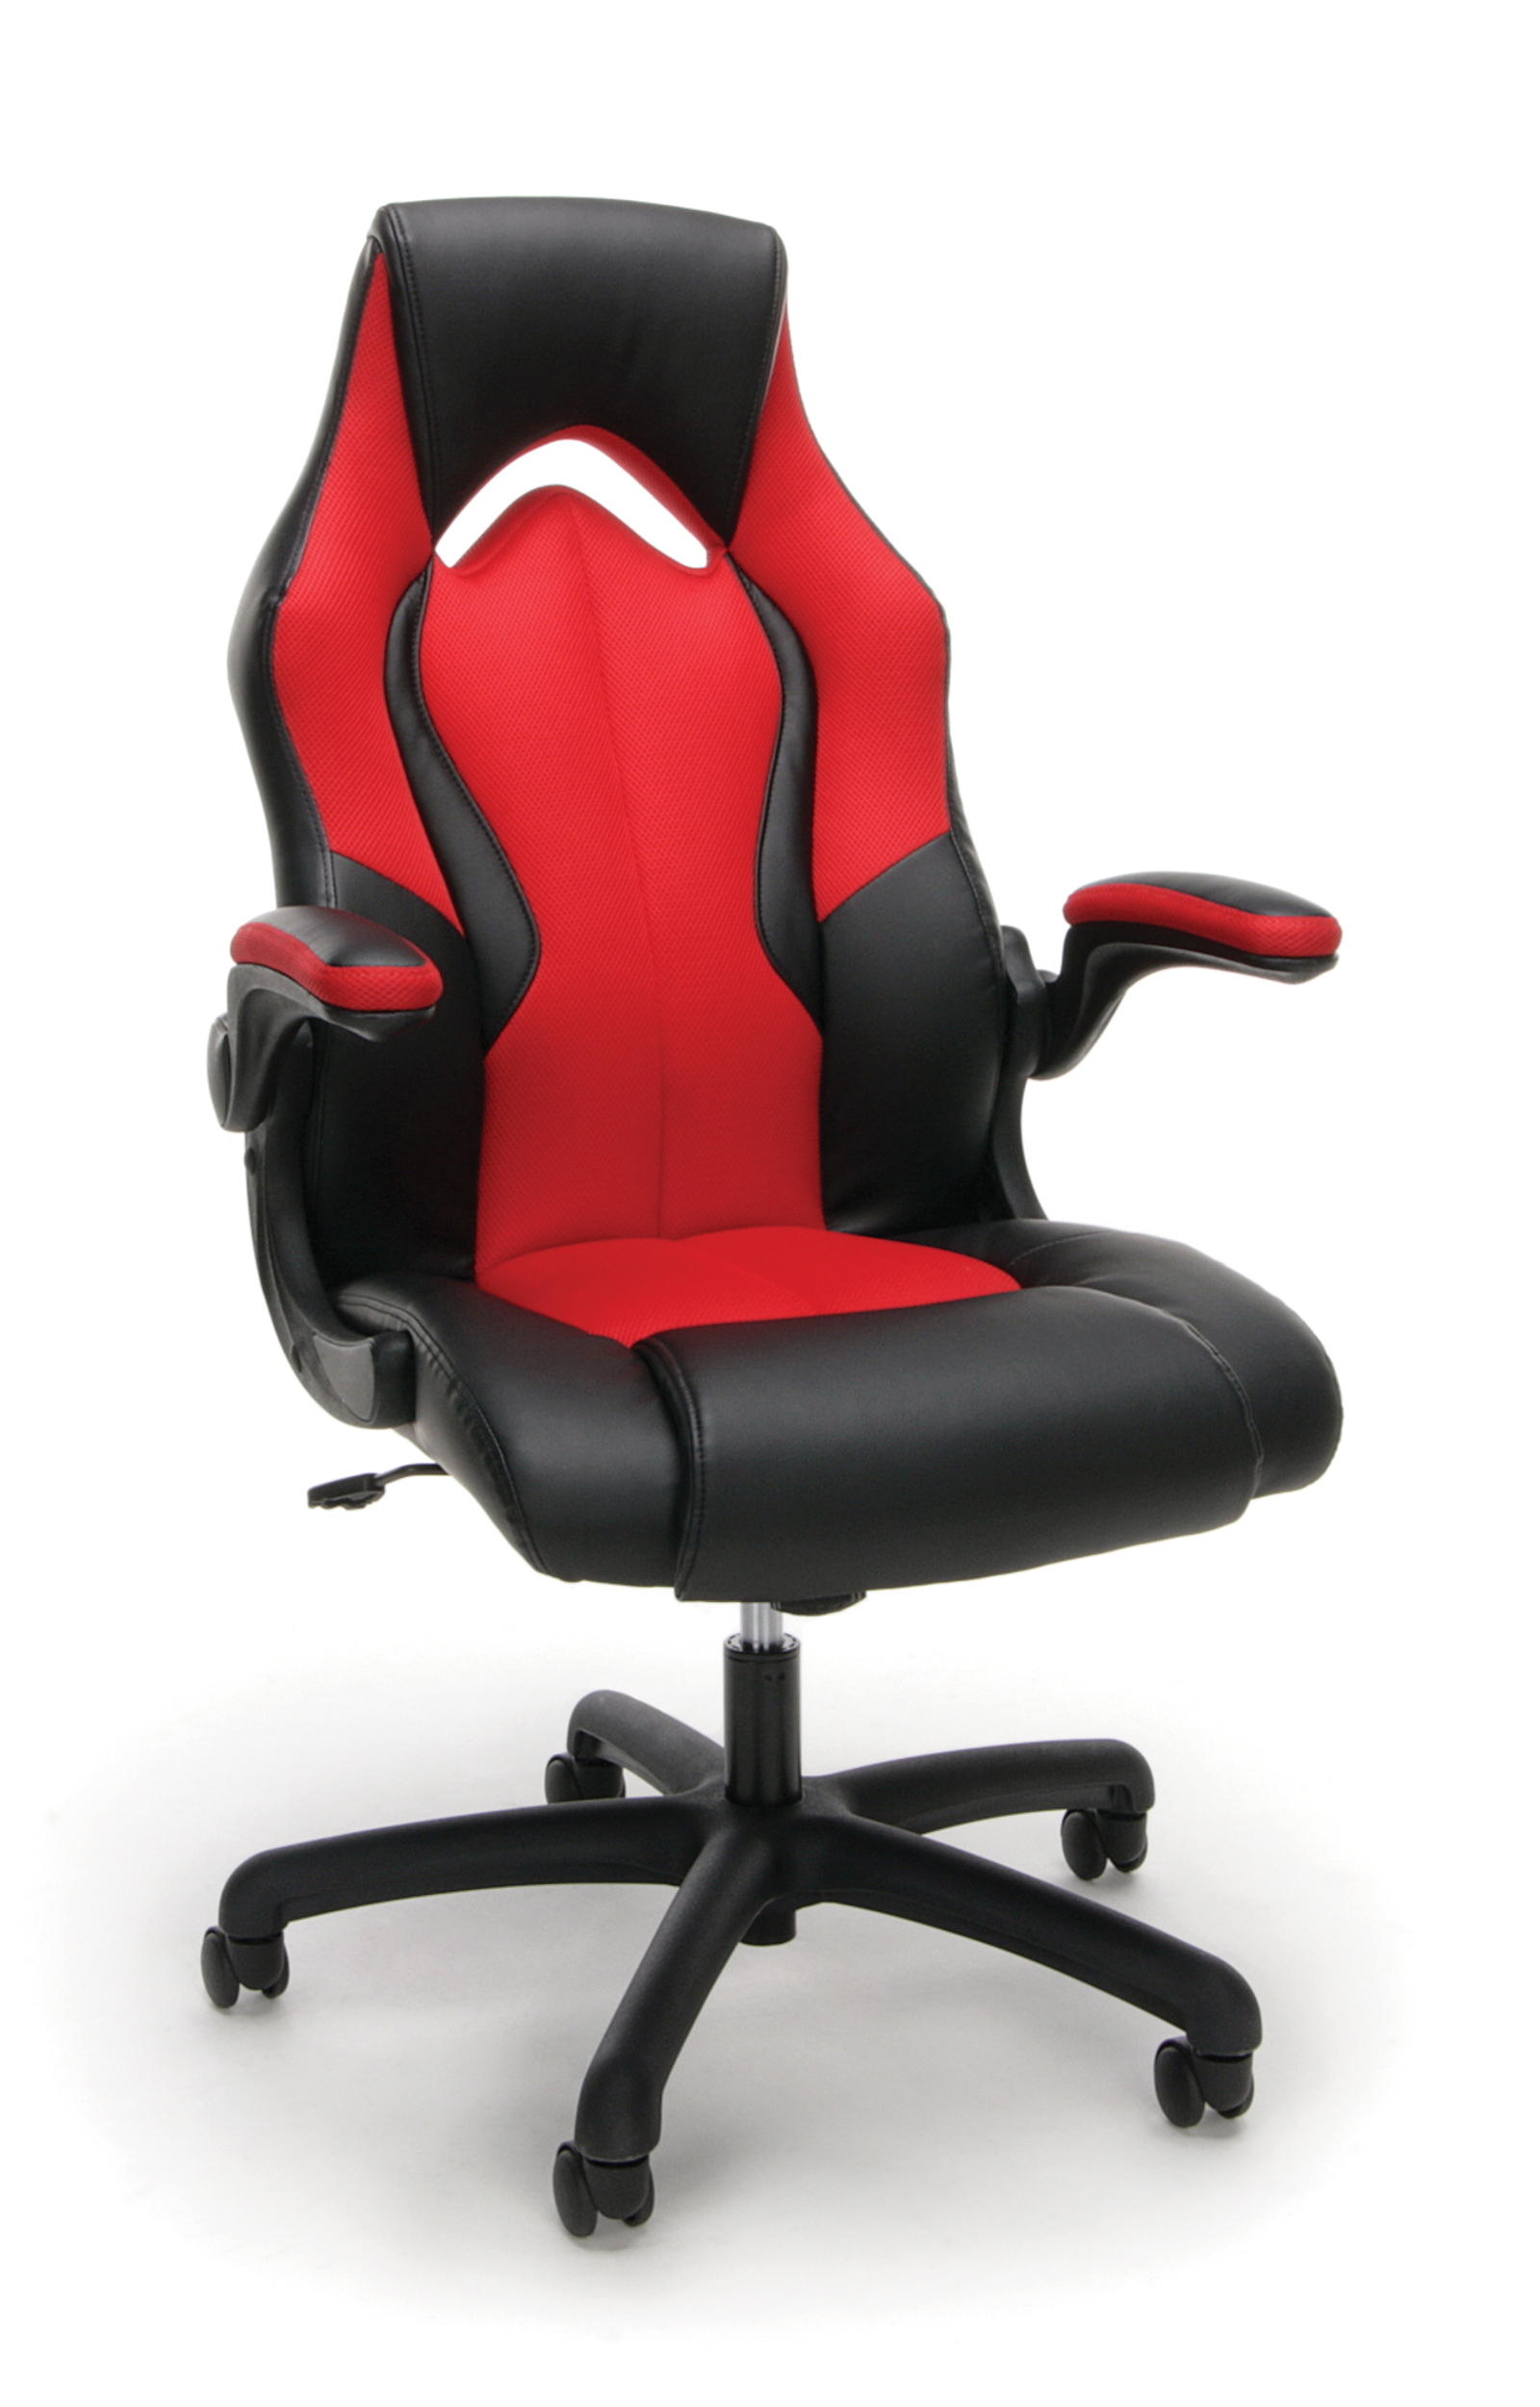 OFM Essentials Racing Style Faux Leather High Back Gaming Chair New